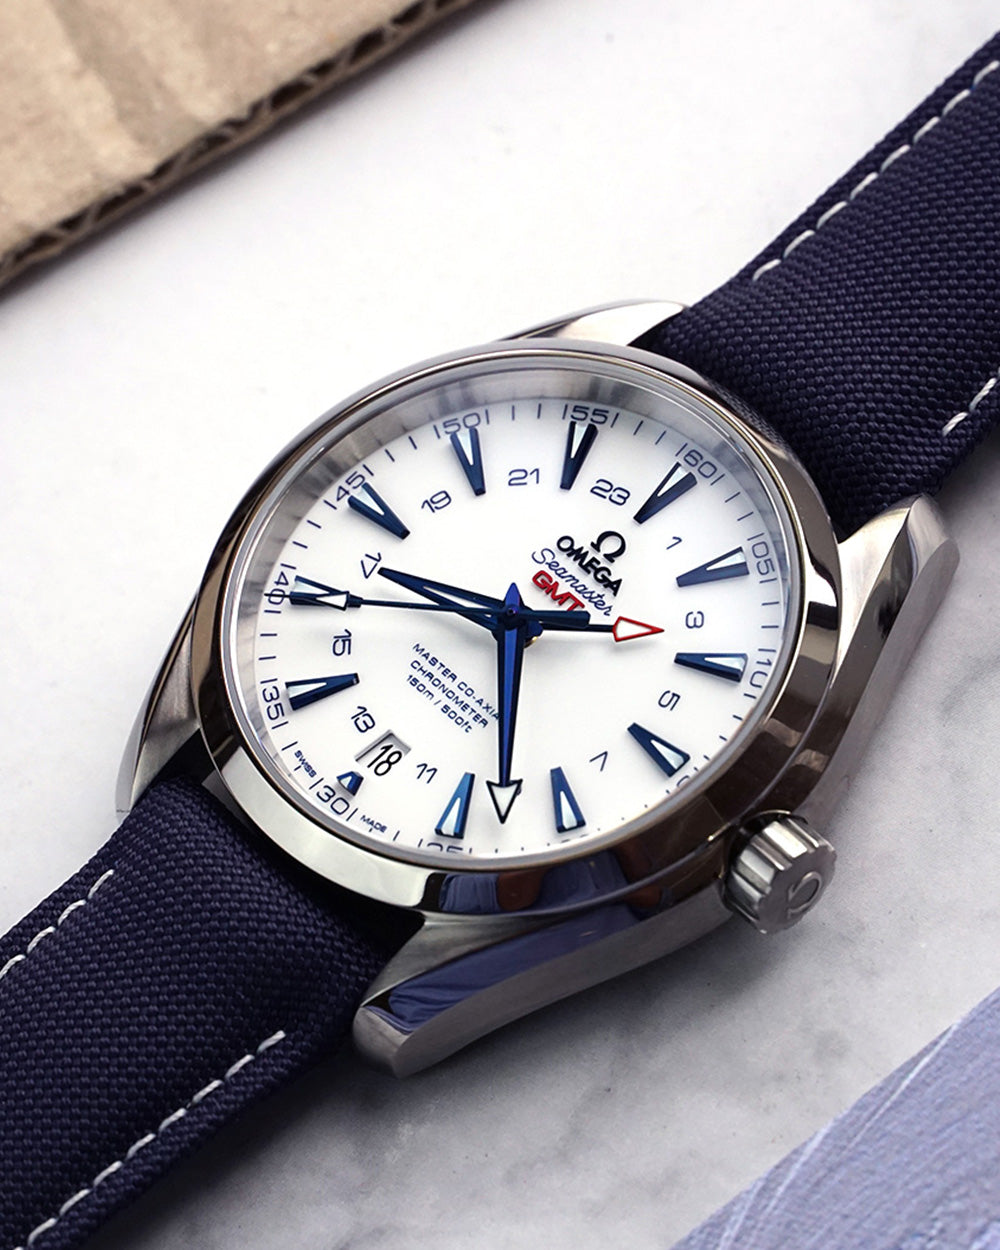 Seamaster Aqua Terra 150M Master Co-Axial GMT - Luxtime - Fine Watches